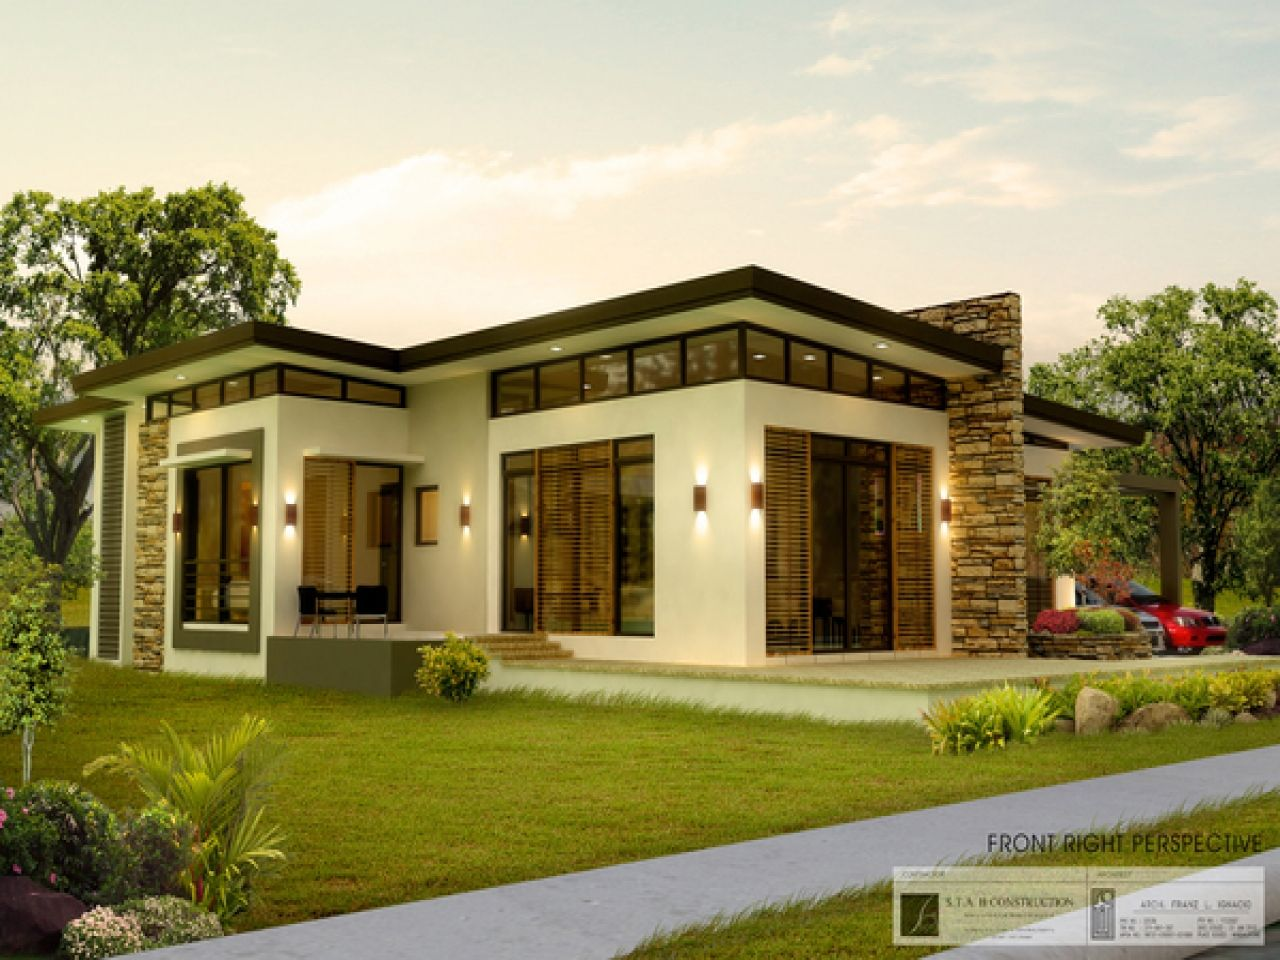 Modern Bungalow Modern Bungalow House Plans Philippines Free